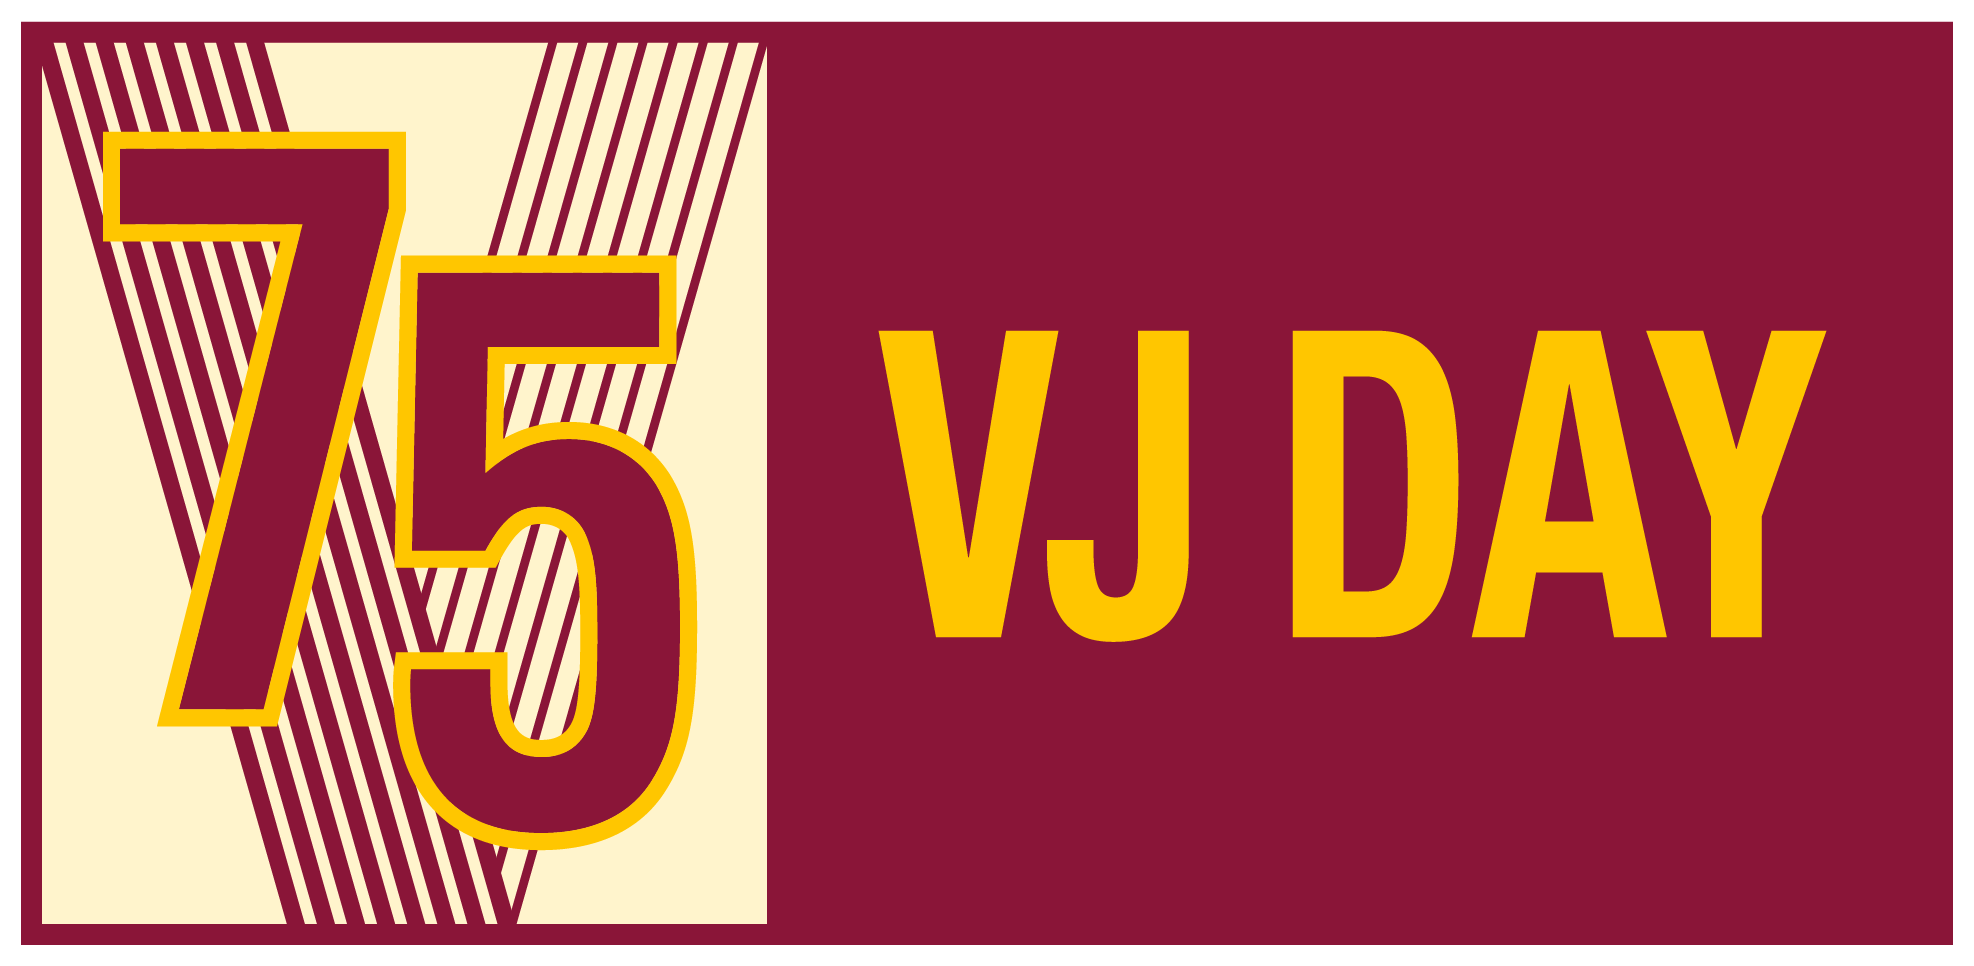 VJ Day 75 graphic